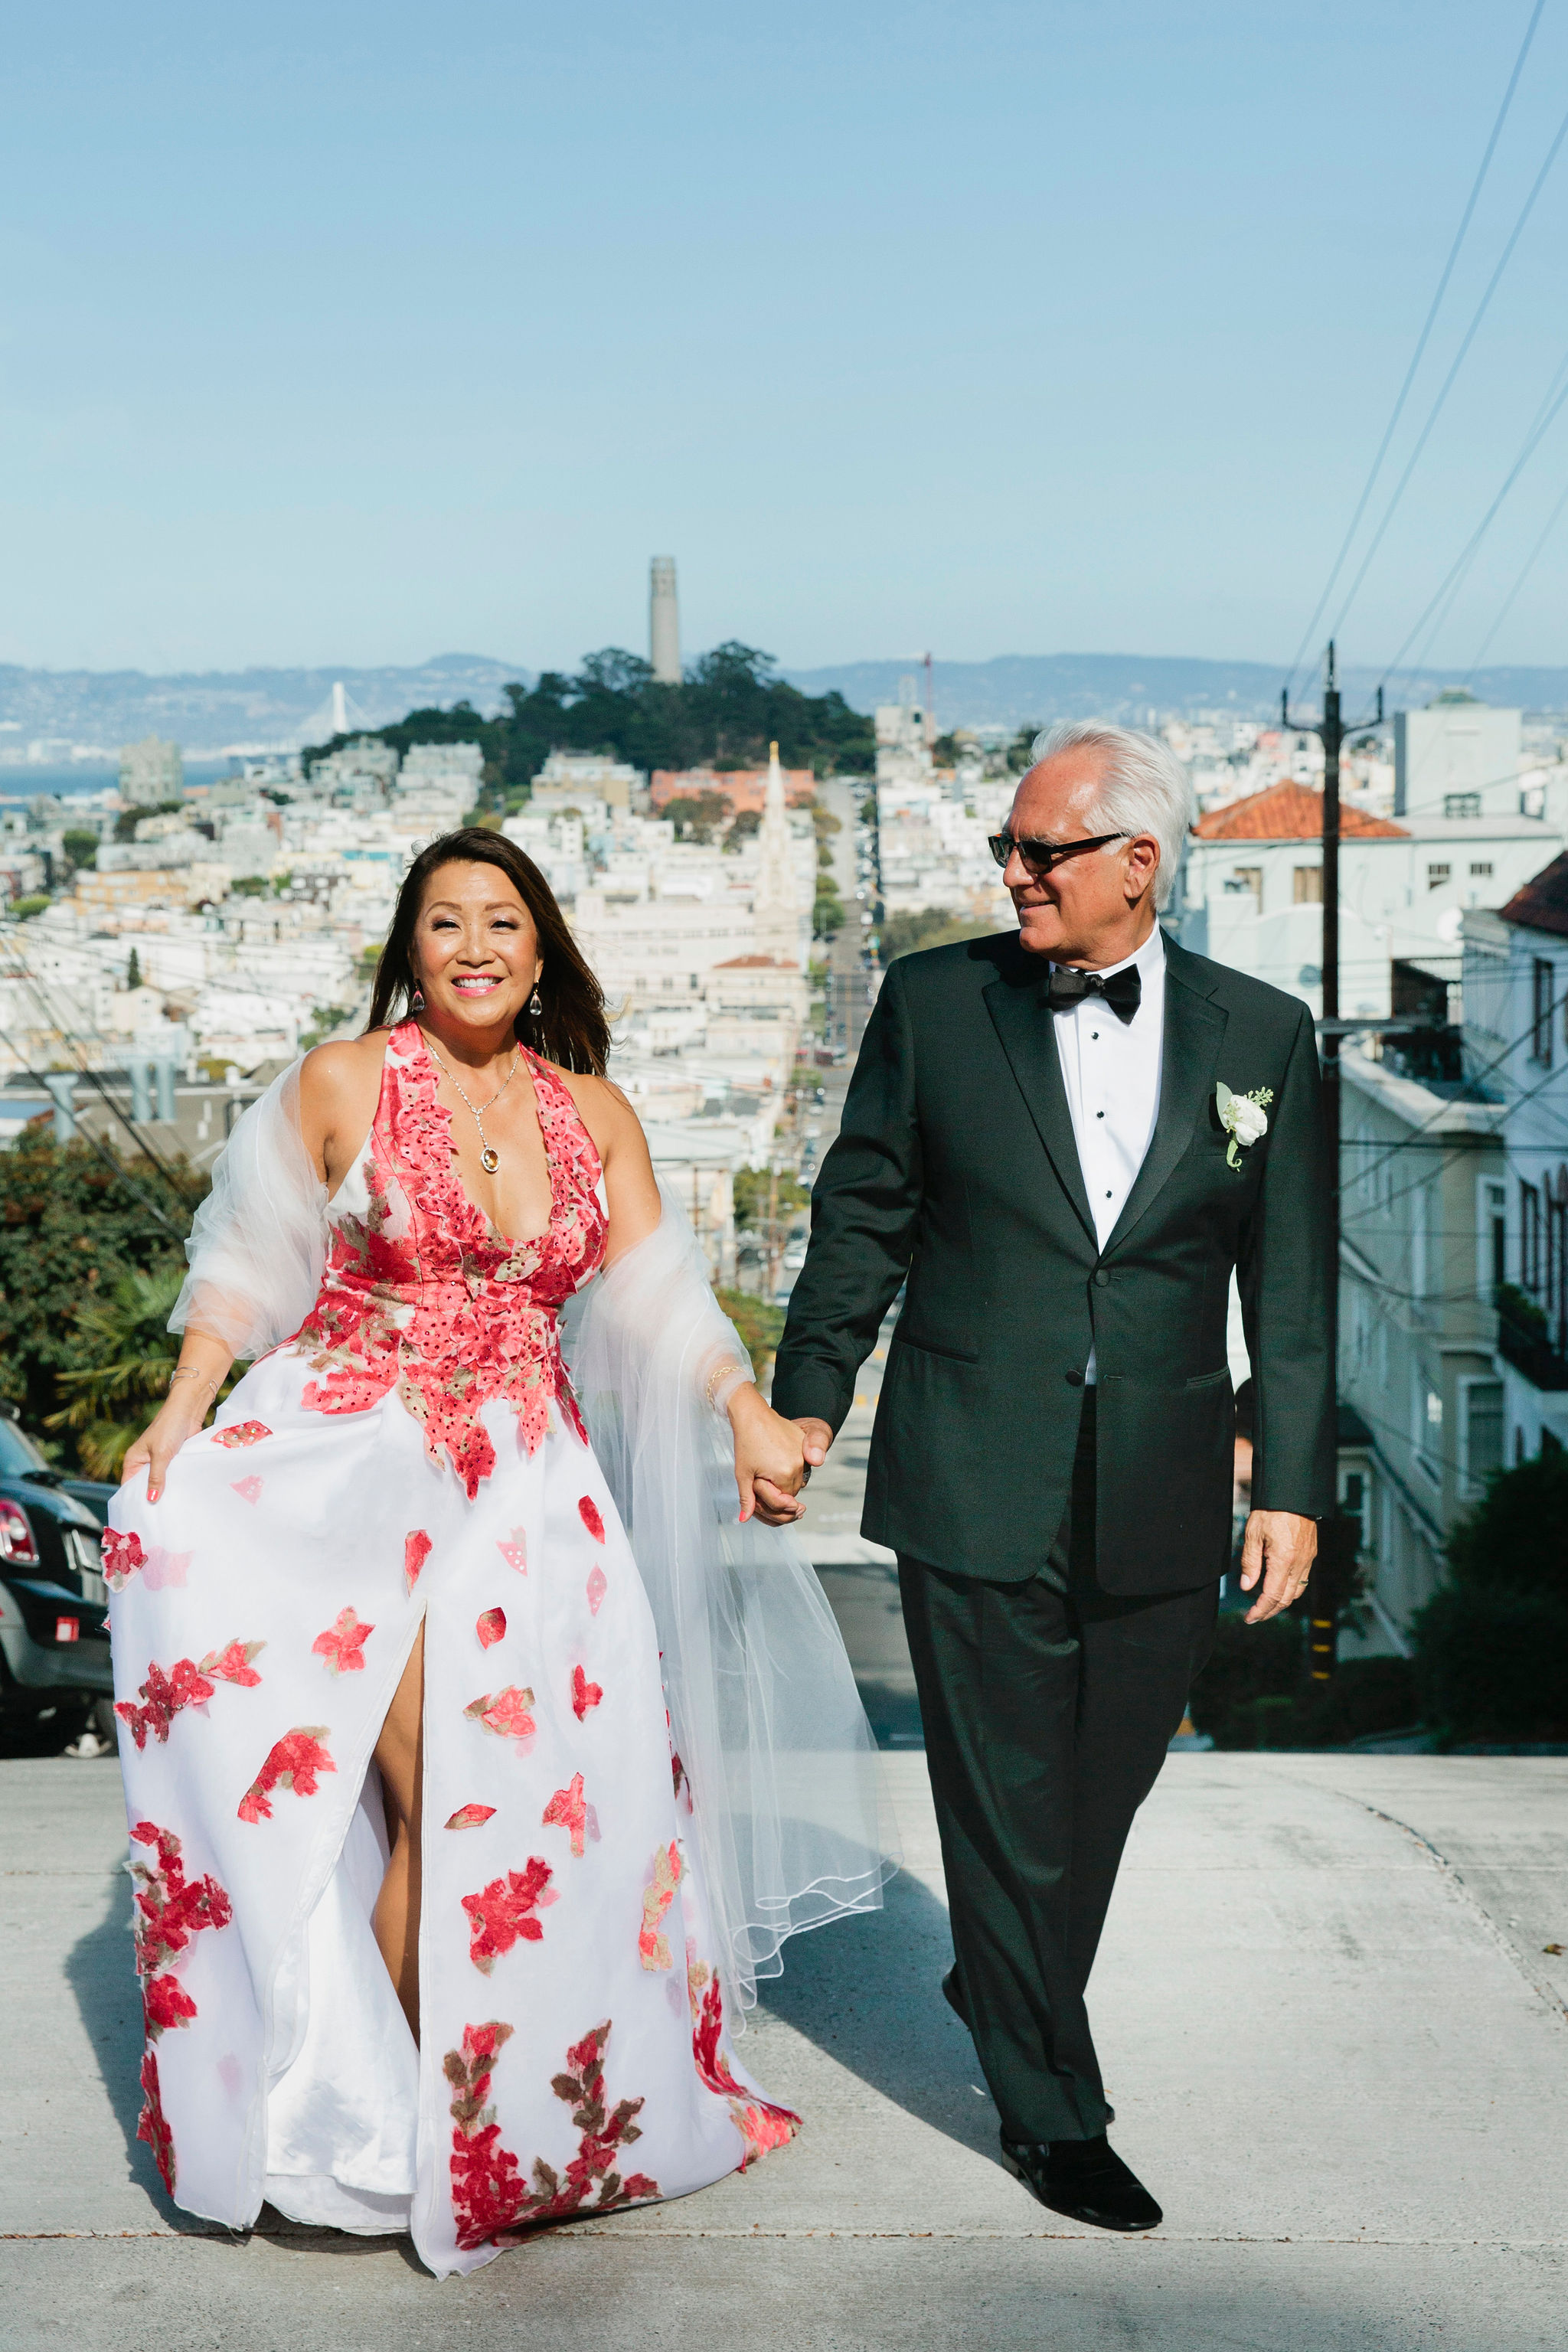 San-Francisco-City-Hall-Wedding-31.JPG